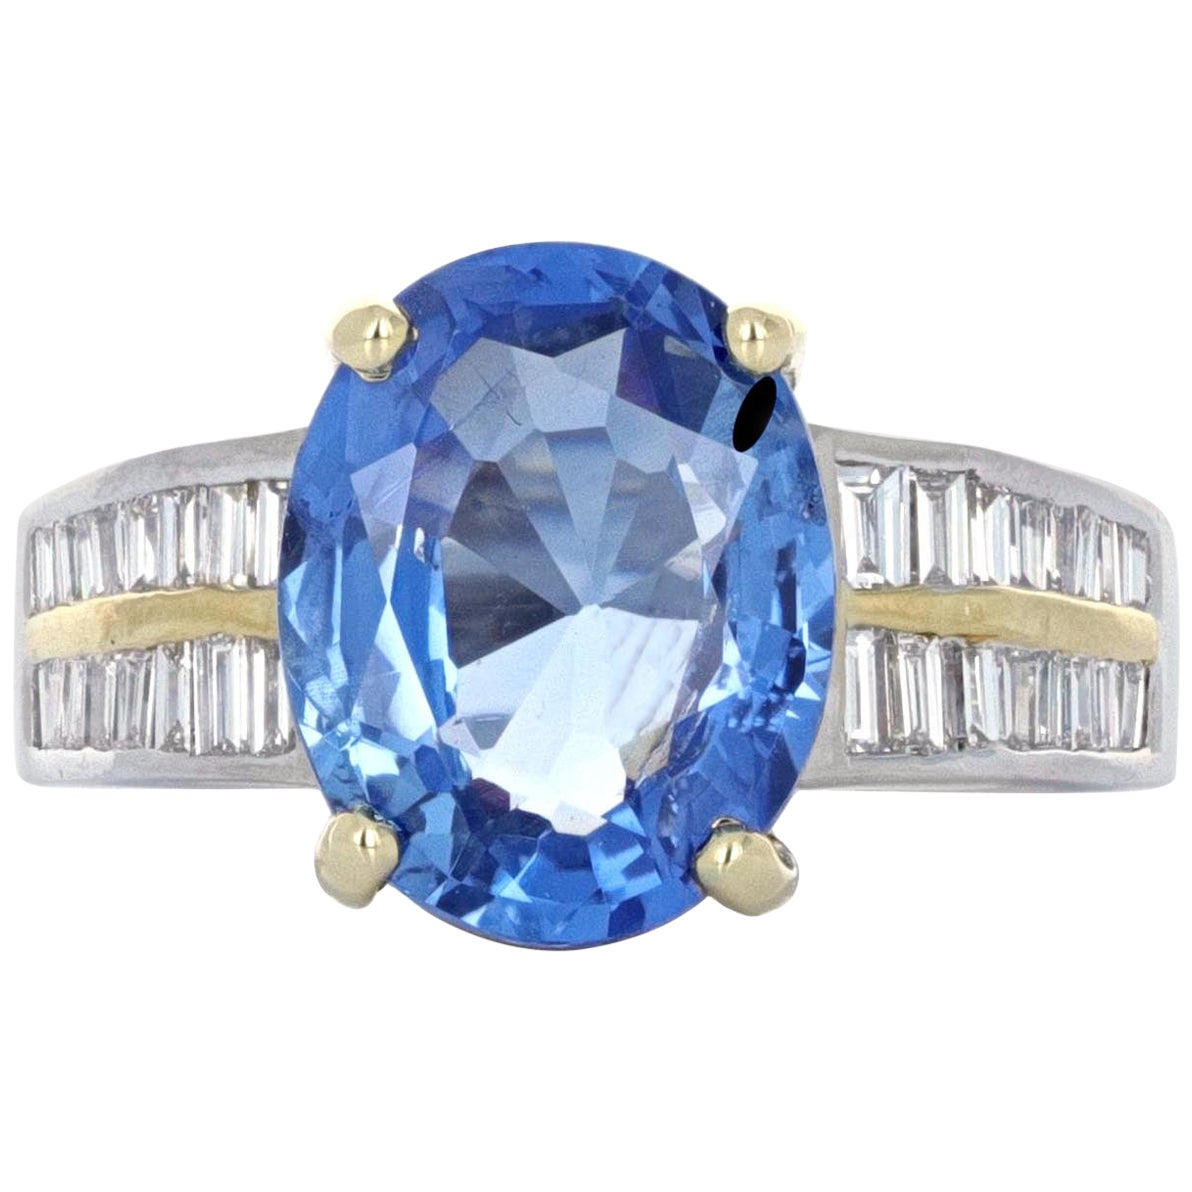 GIA Certified, Retro Style, 5.08 Carat No Heat Sapphire and Diamond Ring